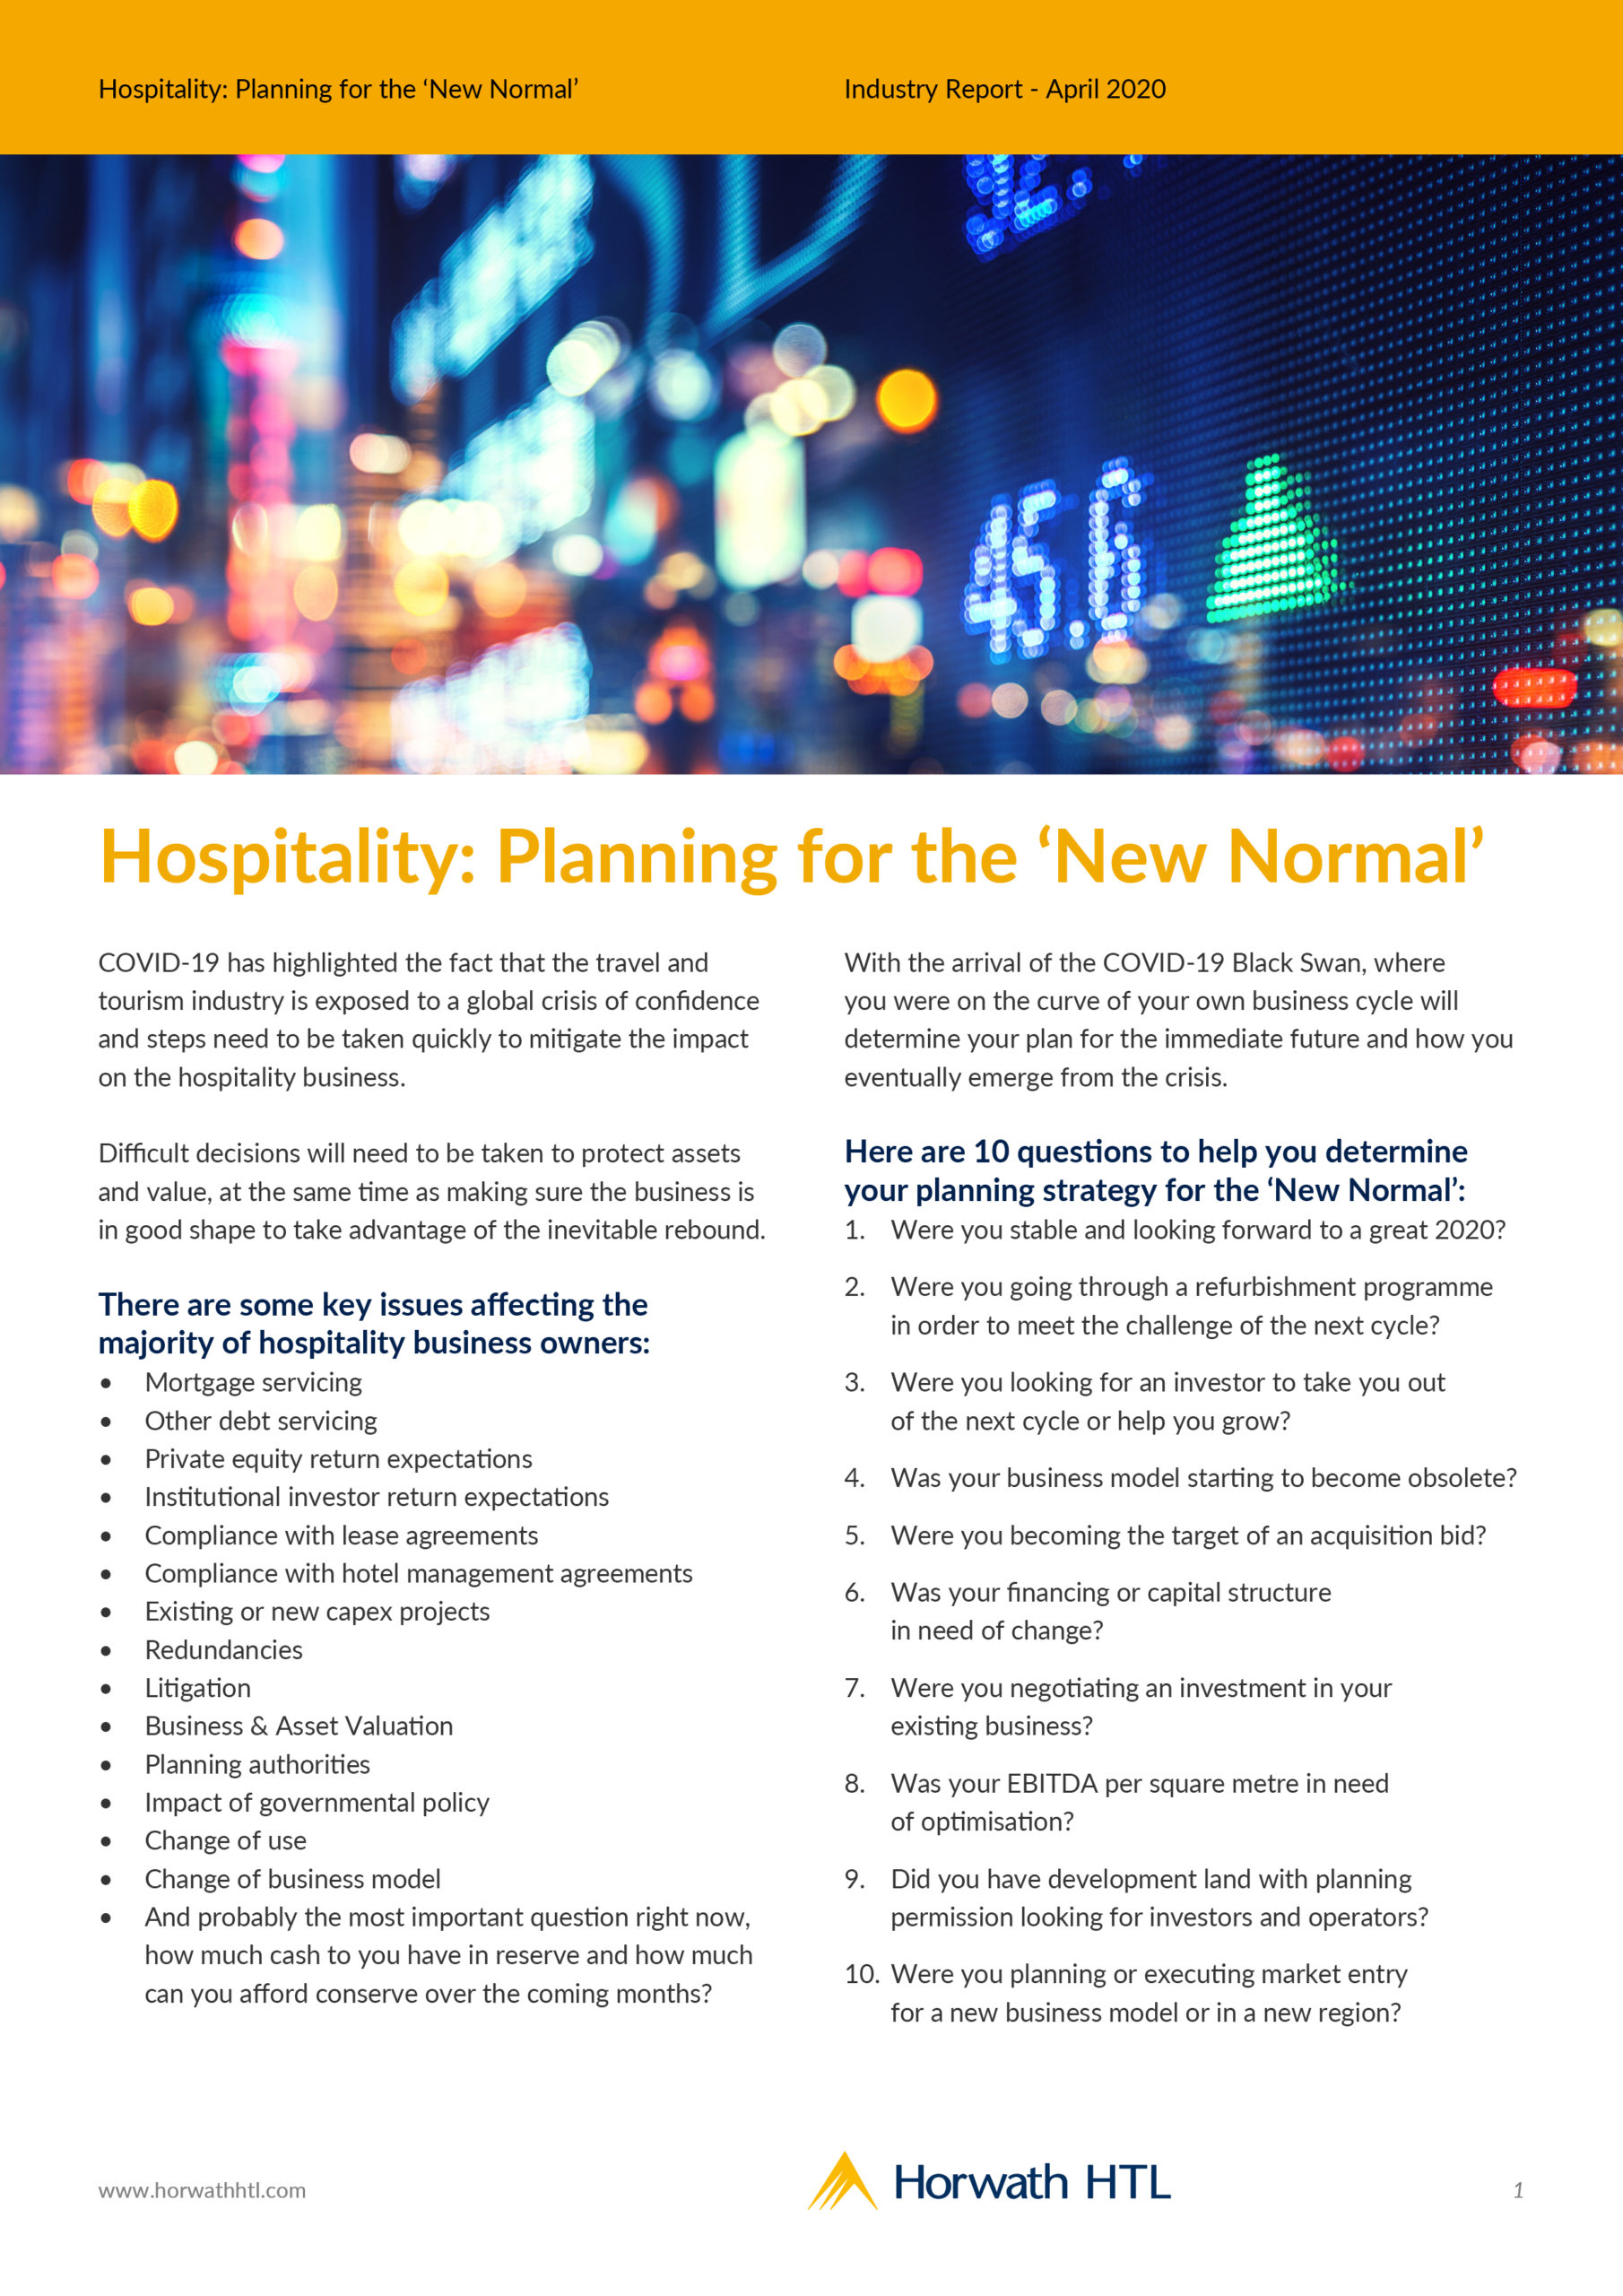 Hospitality Planning for the New Normal scaled 1